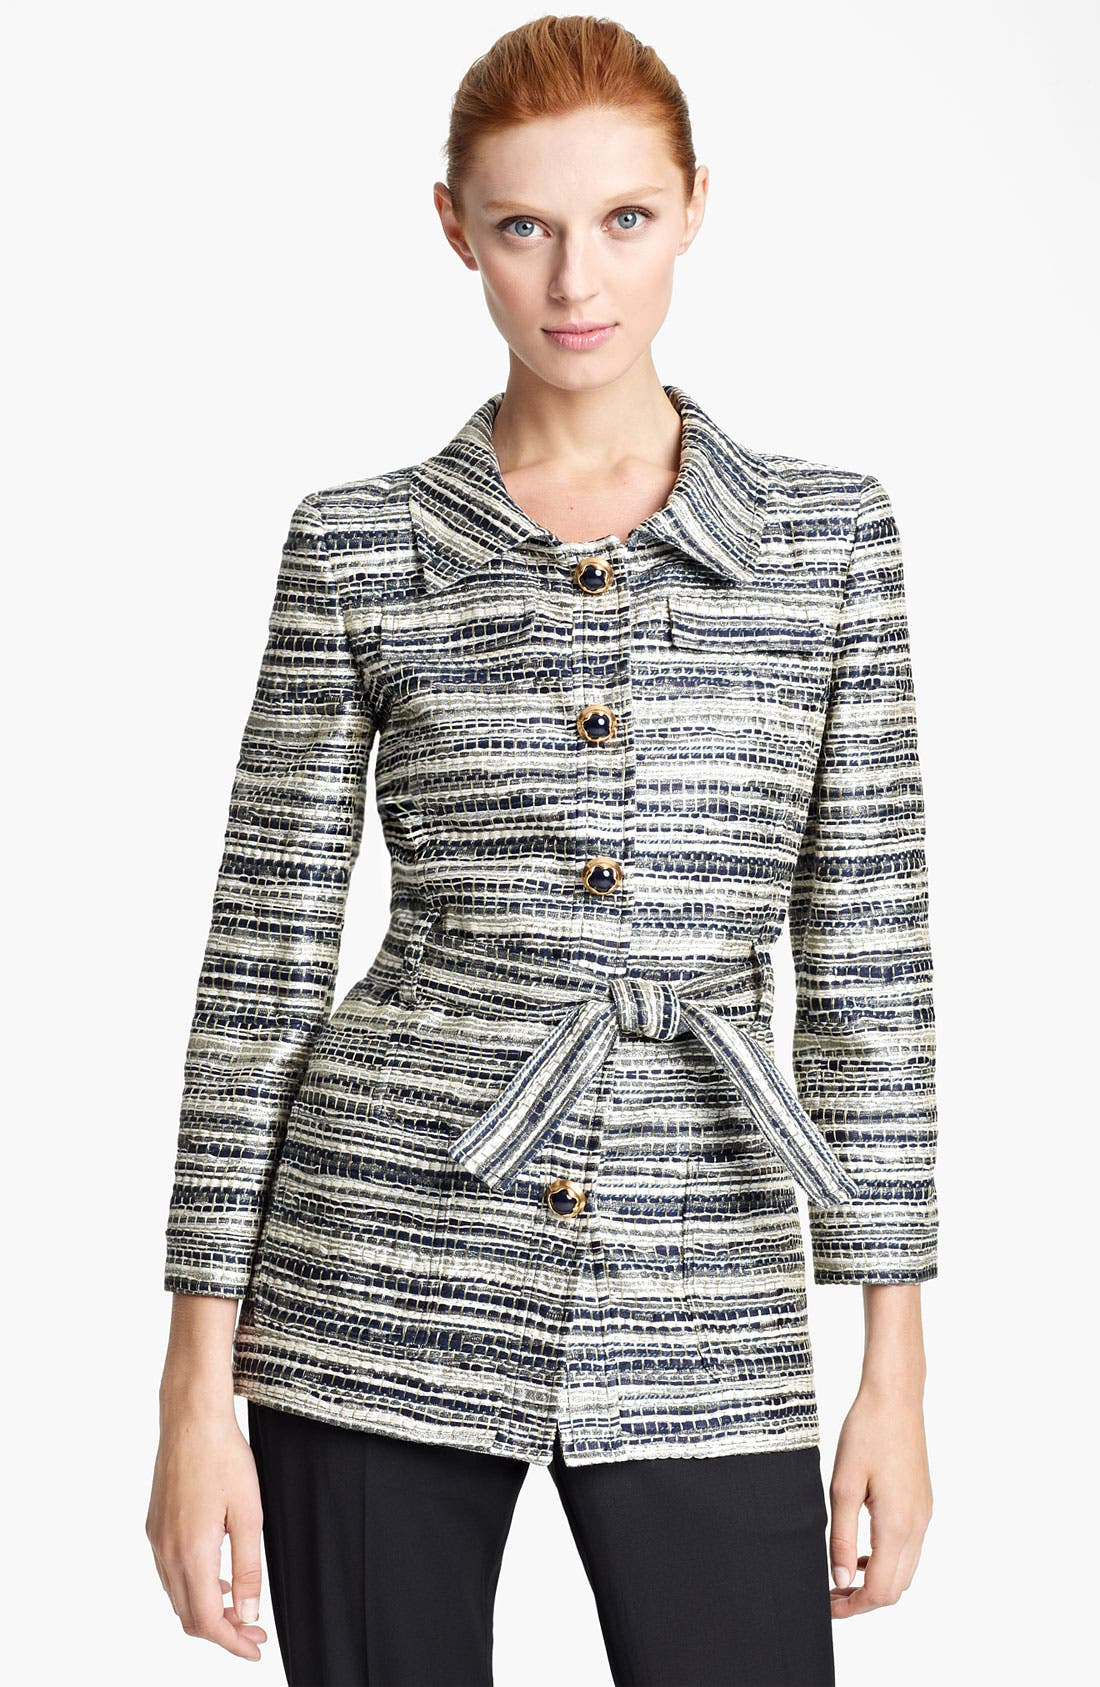 Alternate Image 1 Selected - Oscar de la Renta Belted Metallic Tweed Jacket